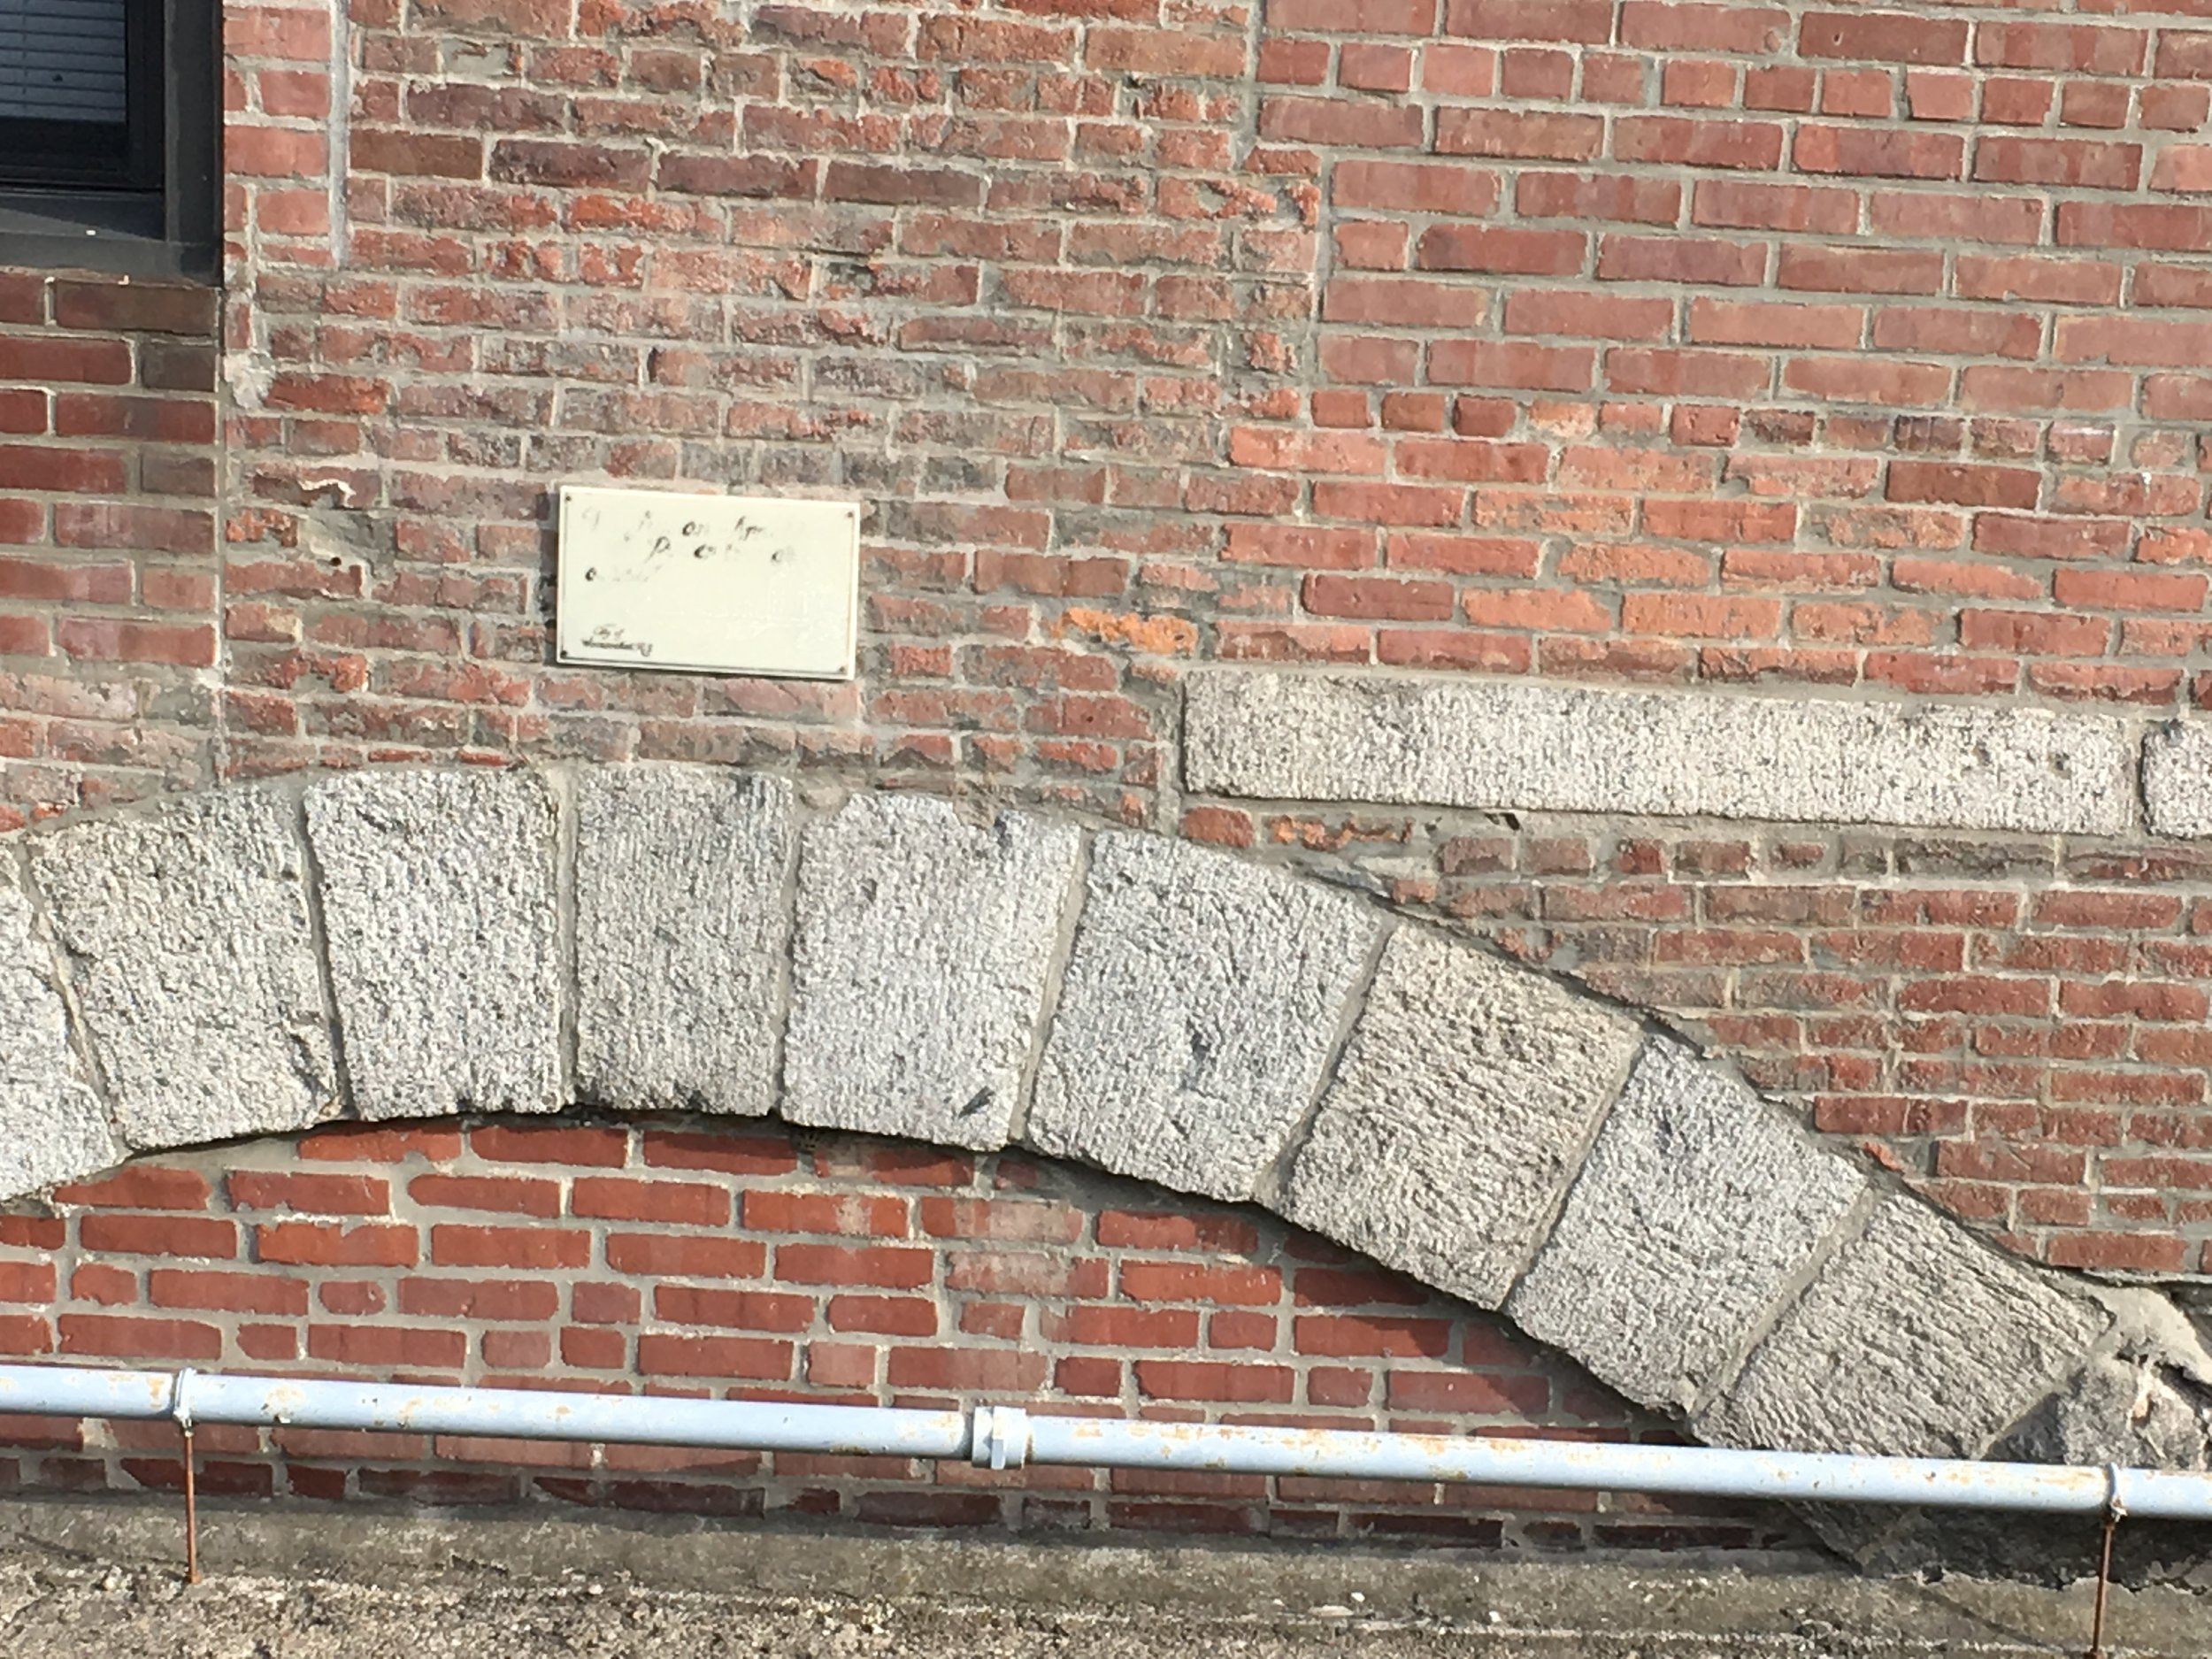 We found a plaque on the side of the Lippitt Mill (now apartments), but it's been so worn away that we couldn't read it.